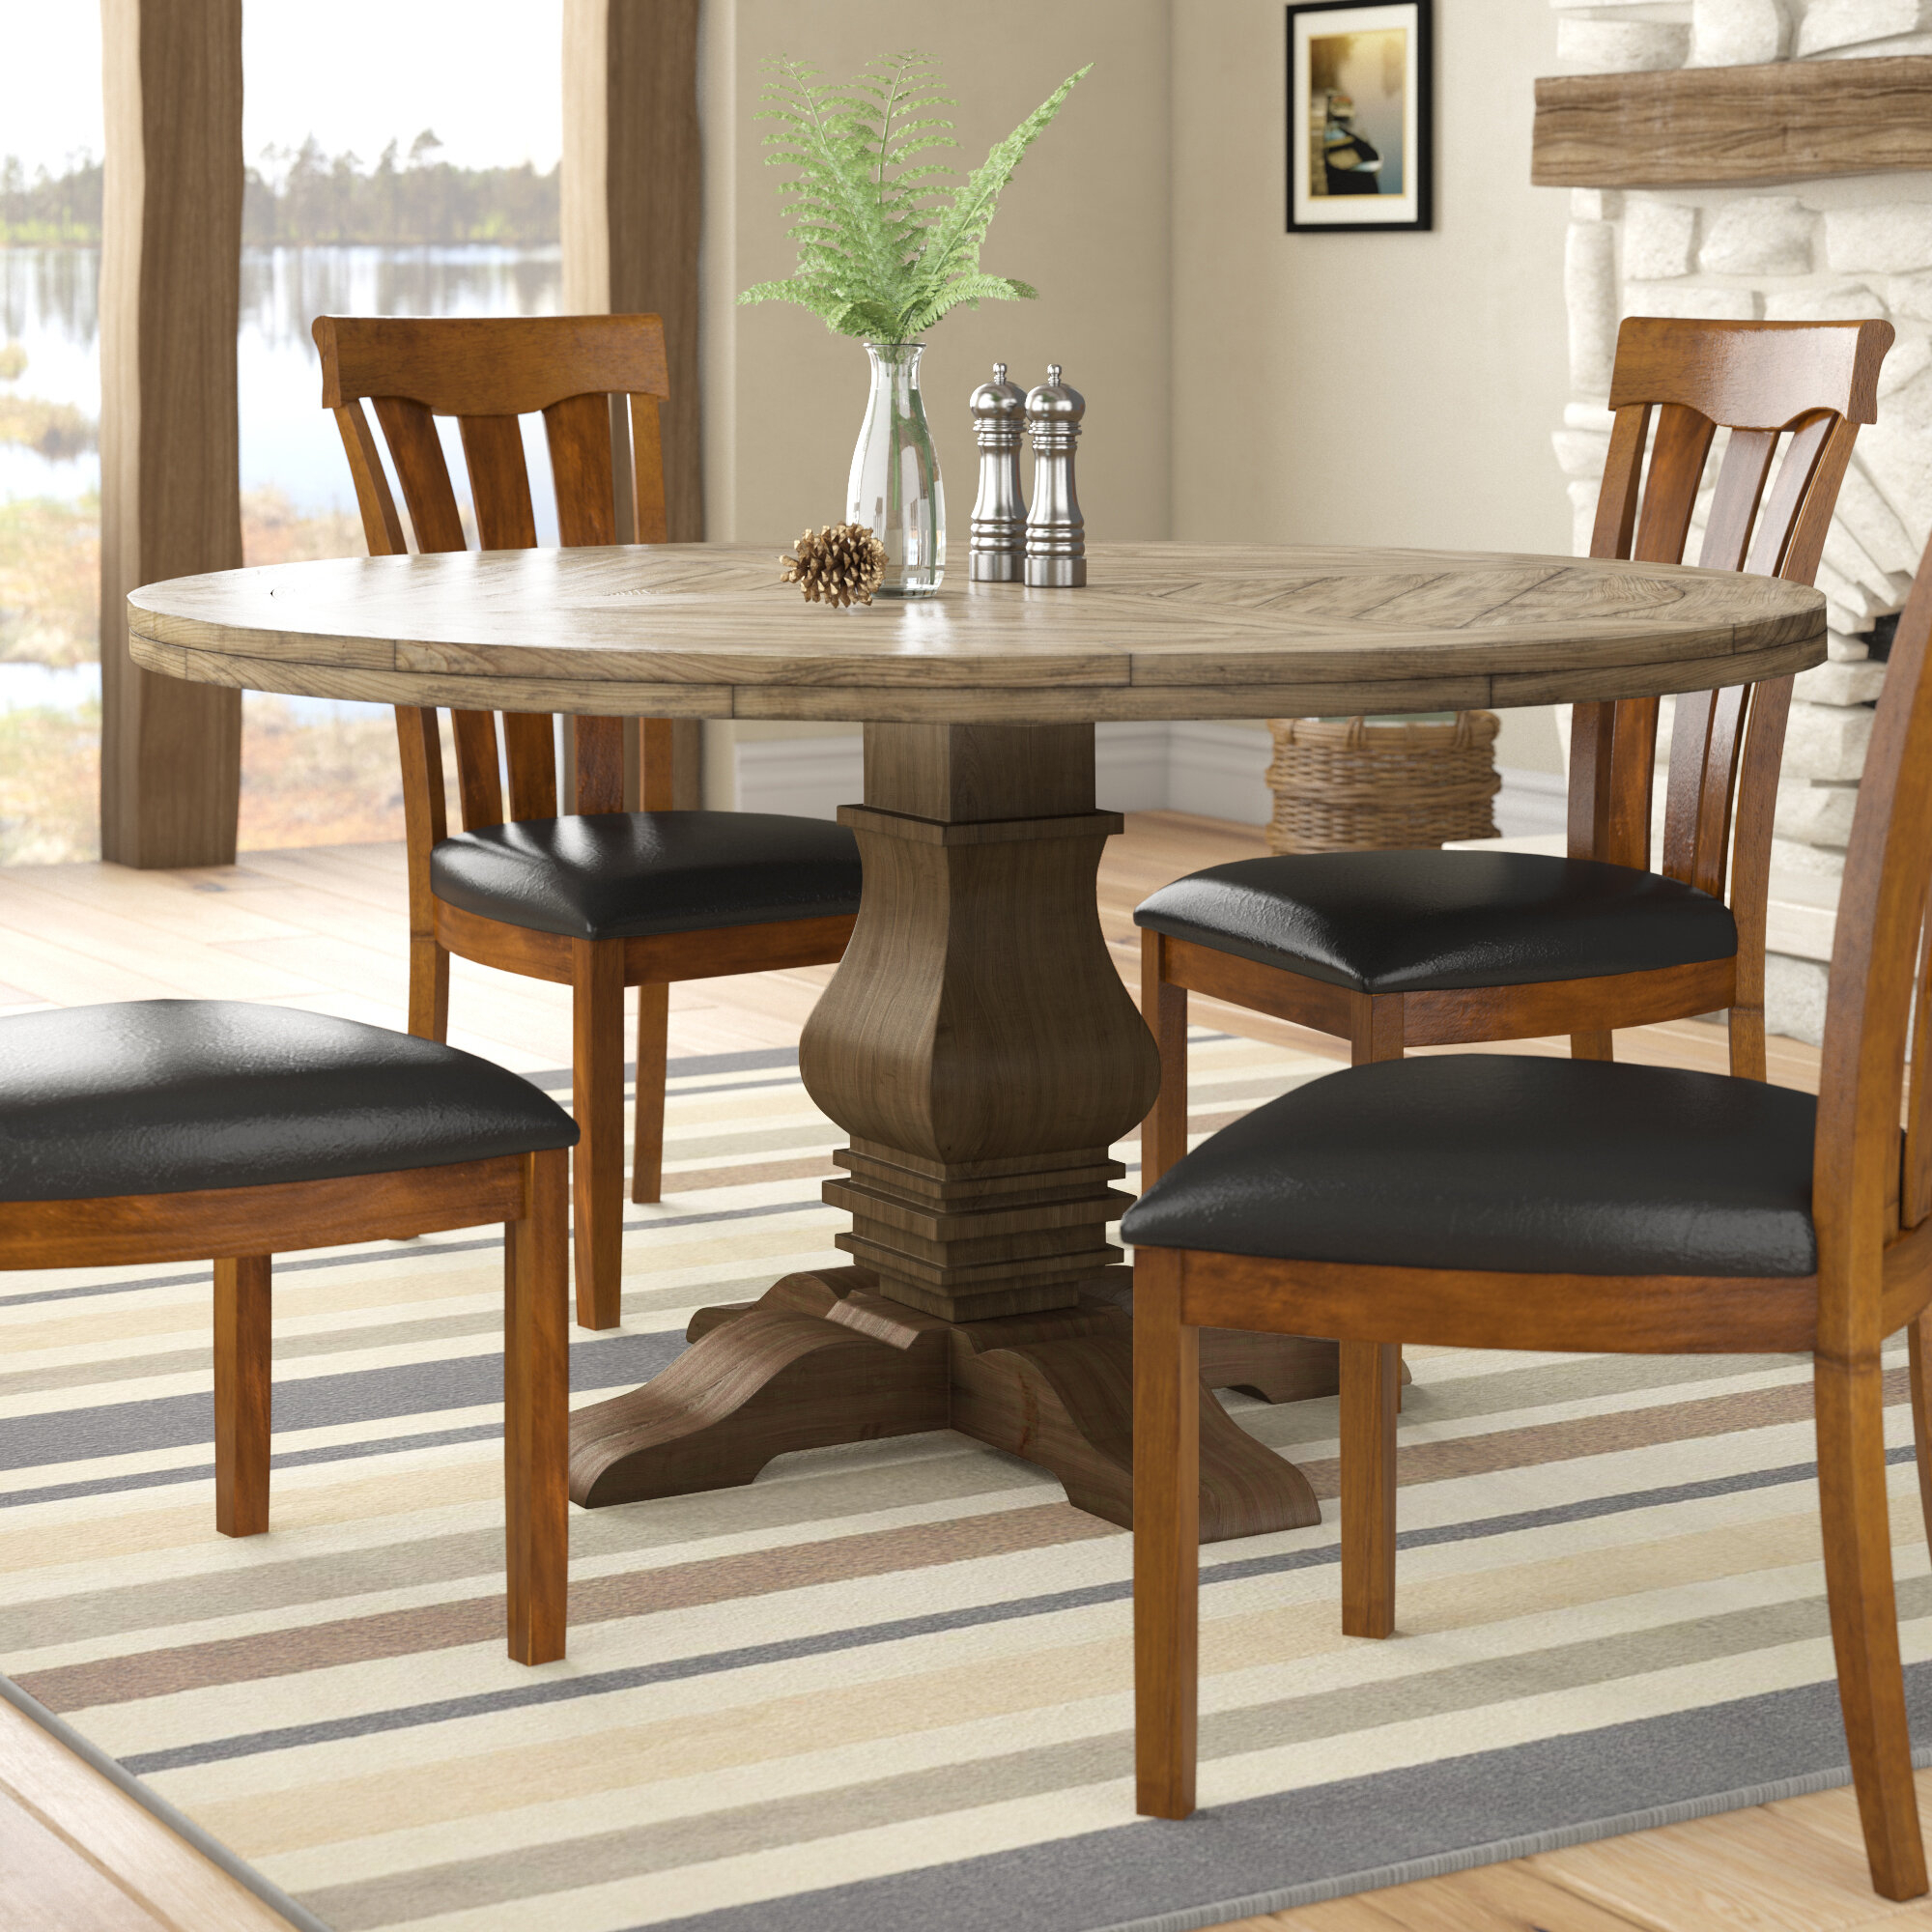 Magaw Solid Wood Dining Table Within Most Current Rae Round Pedestal Dining Tables (Photo 7 of 25)